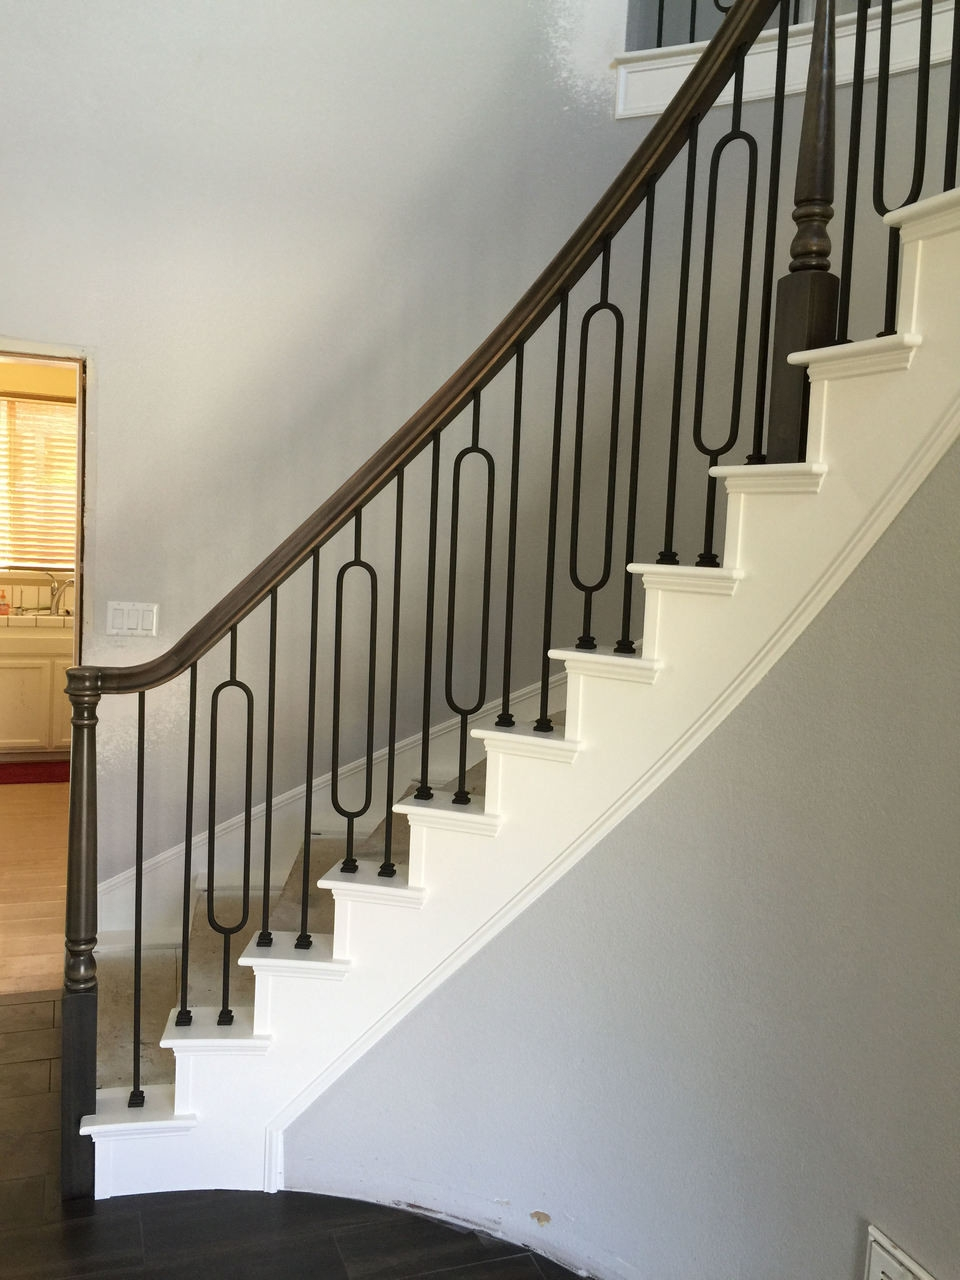 T 80 Single Oval Tubular Steel Stair Baluster Westfire Stair   Iron Handrails For Stairs   Cheap   Staircase   Spanish Style   Wood   Craftsman Style